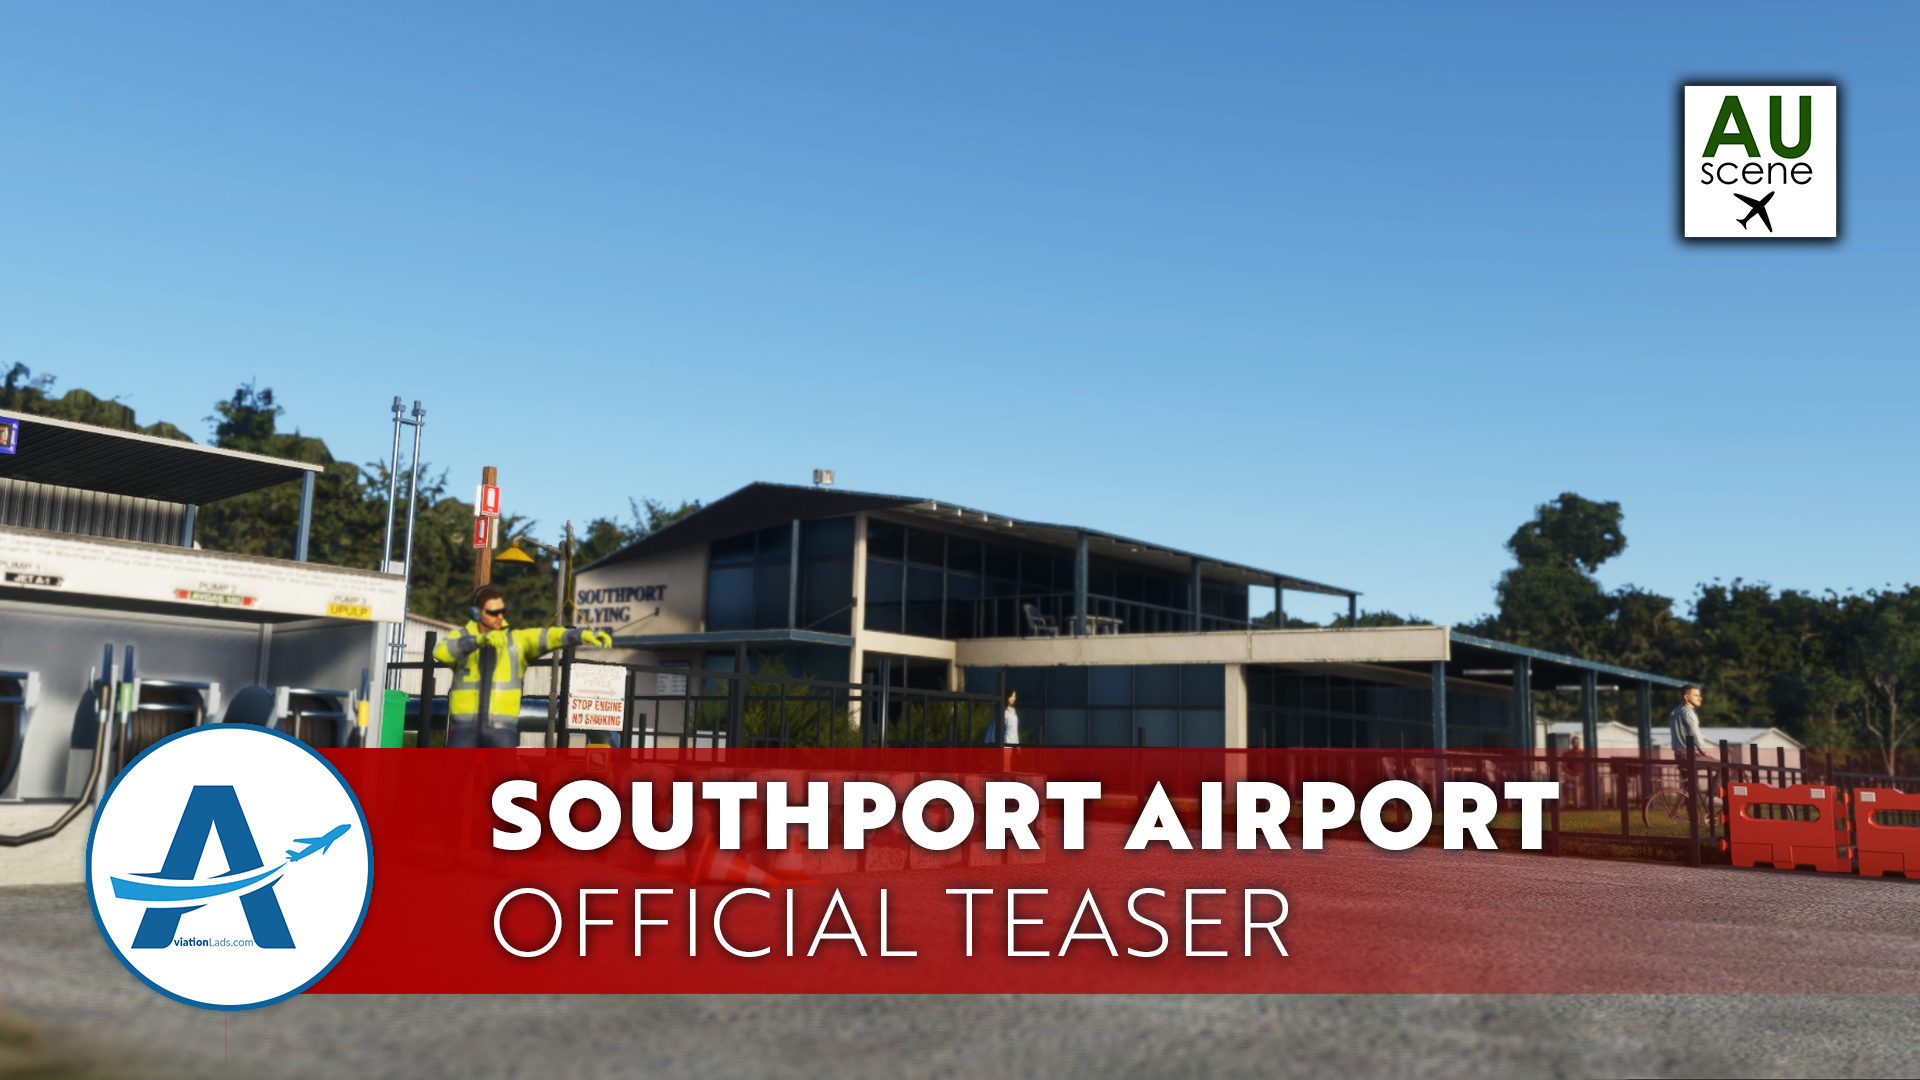 [TEASER] AUscene – Southport Airport